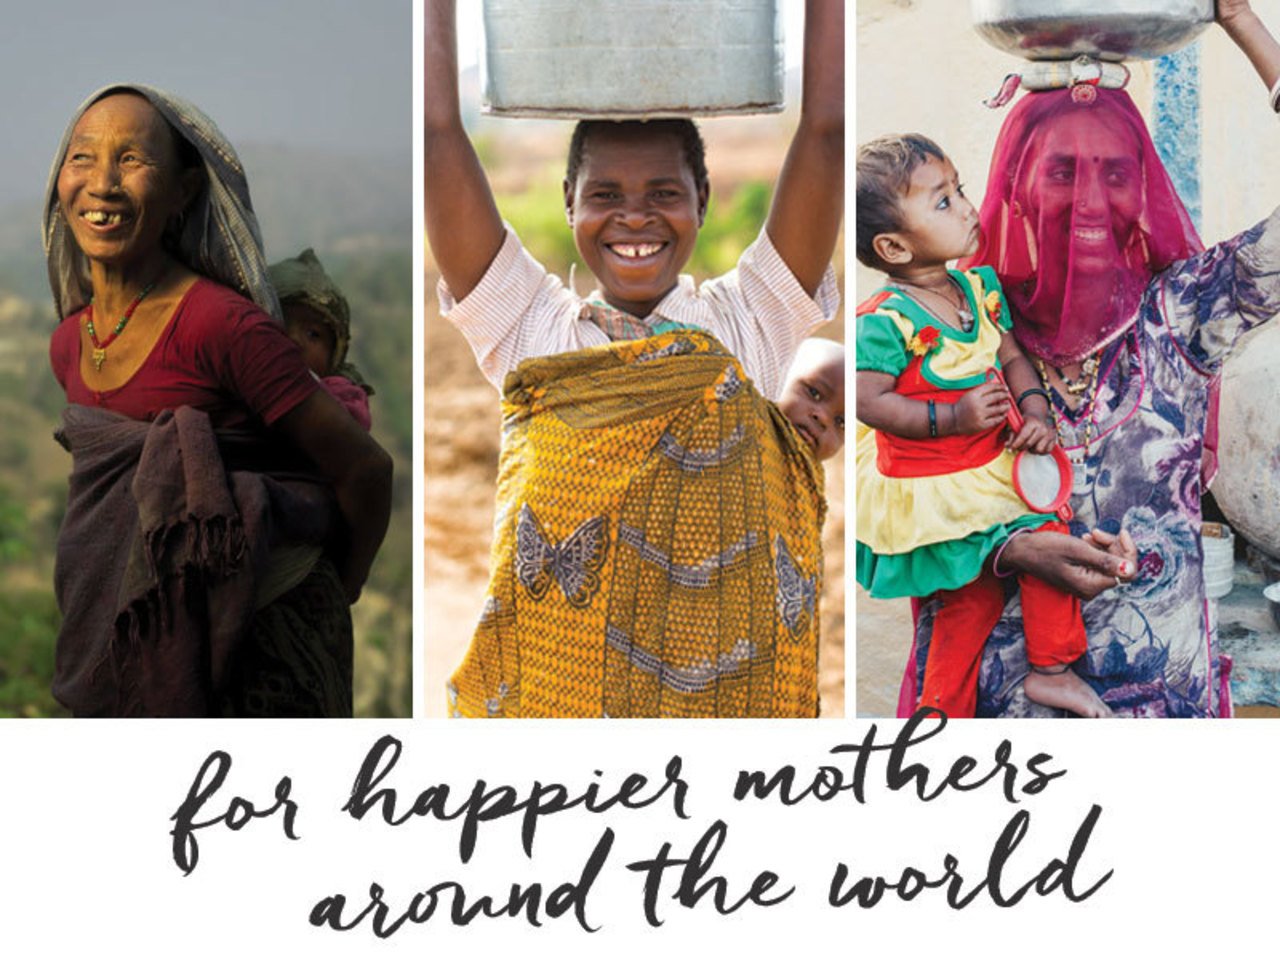 For happier mothers around the world